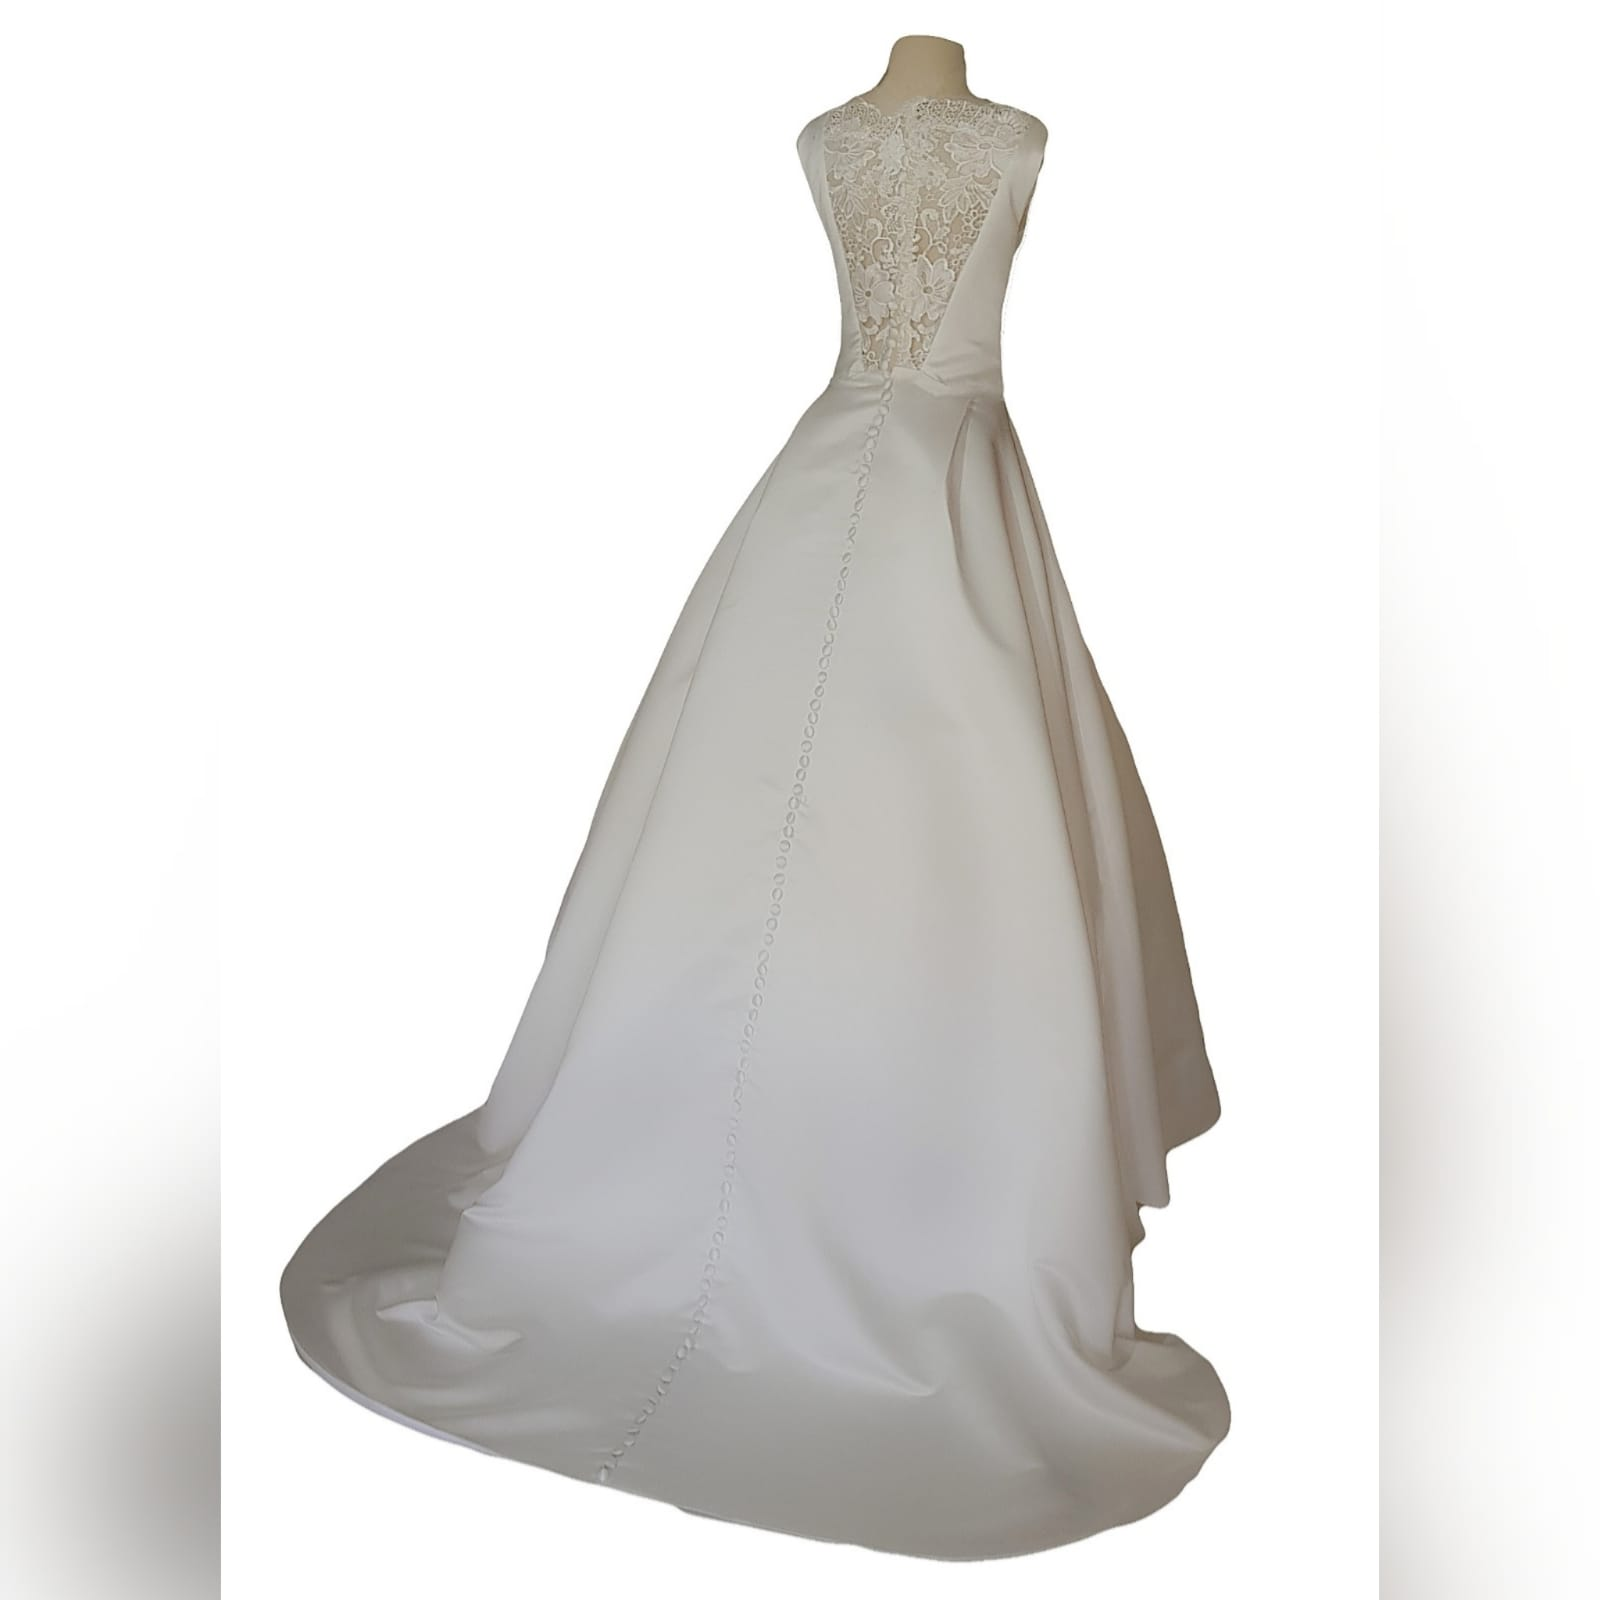 "Elegant satin wedding dress 6 <blockquote>""let yourself be drawn by the stronger pull of that which you truly love. "" rumi</blockquote> a gorgeous, elegant satin wedding dress created especially for my client. A classy fit with a bateau neckline, lace back and sides. Buttons all the way down till the edge of train adding that extra touch of sophistication. Designed with pockets to make life easier for the bride on her special day"